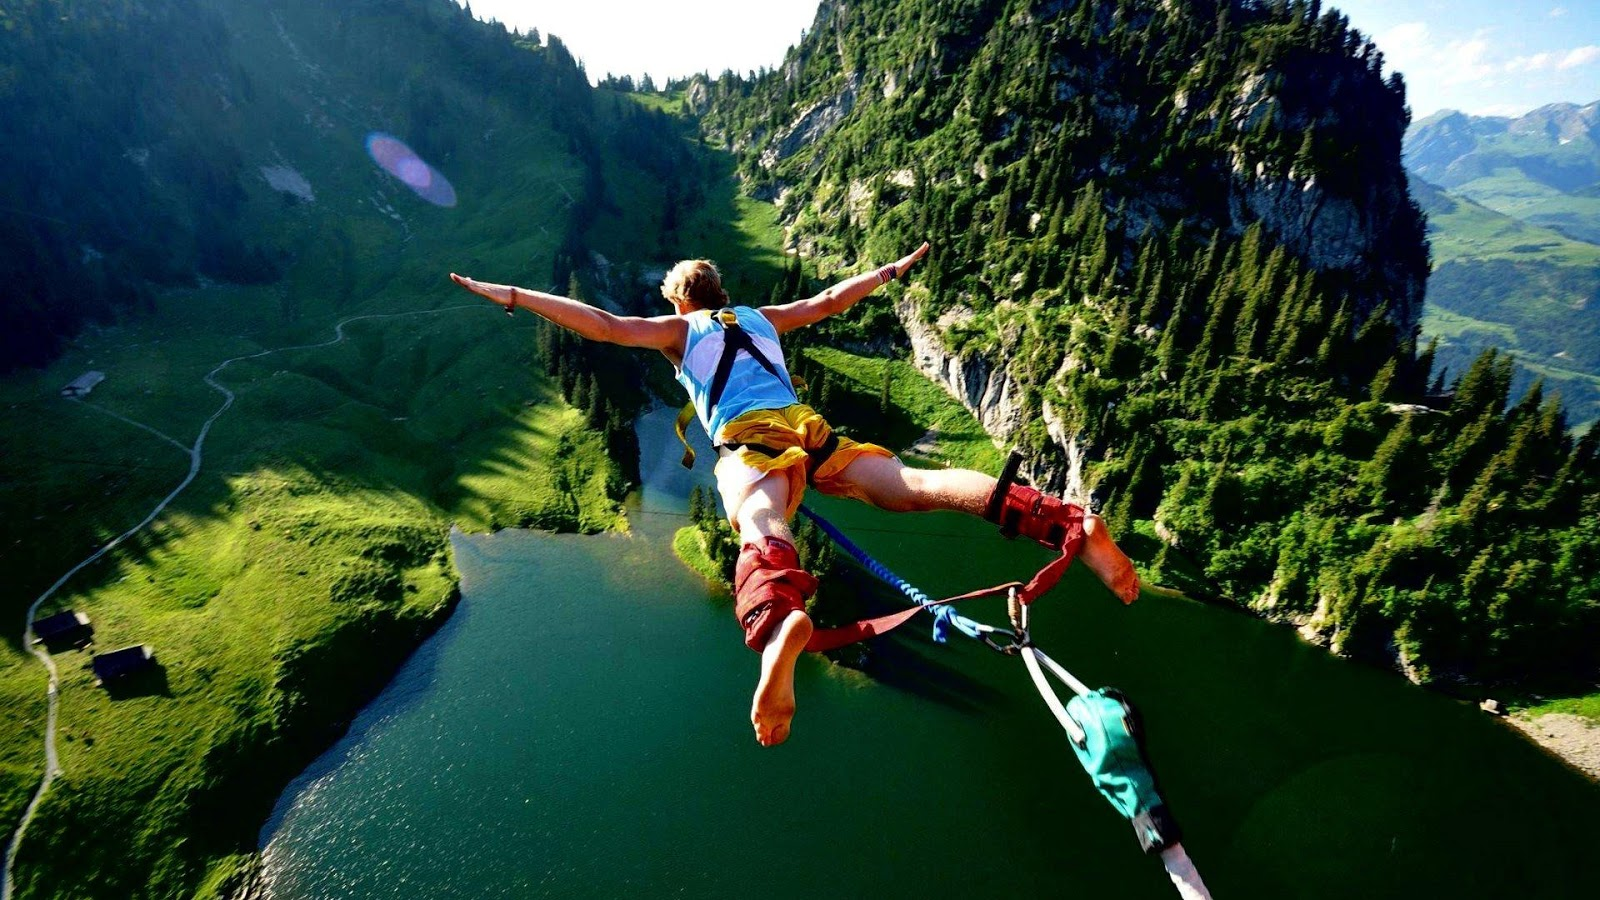 Bungee Jumping in a High Hills